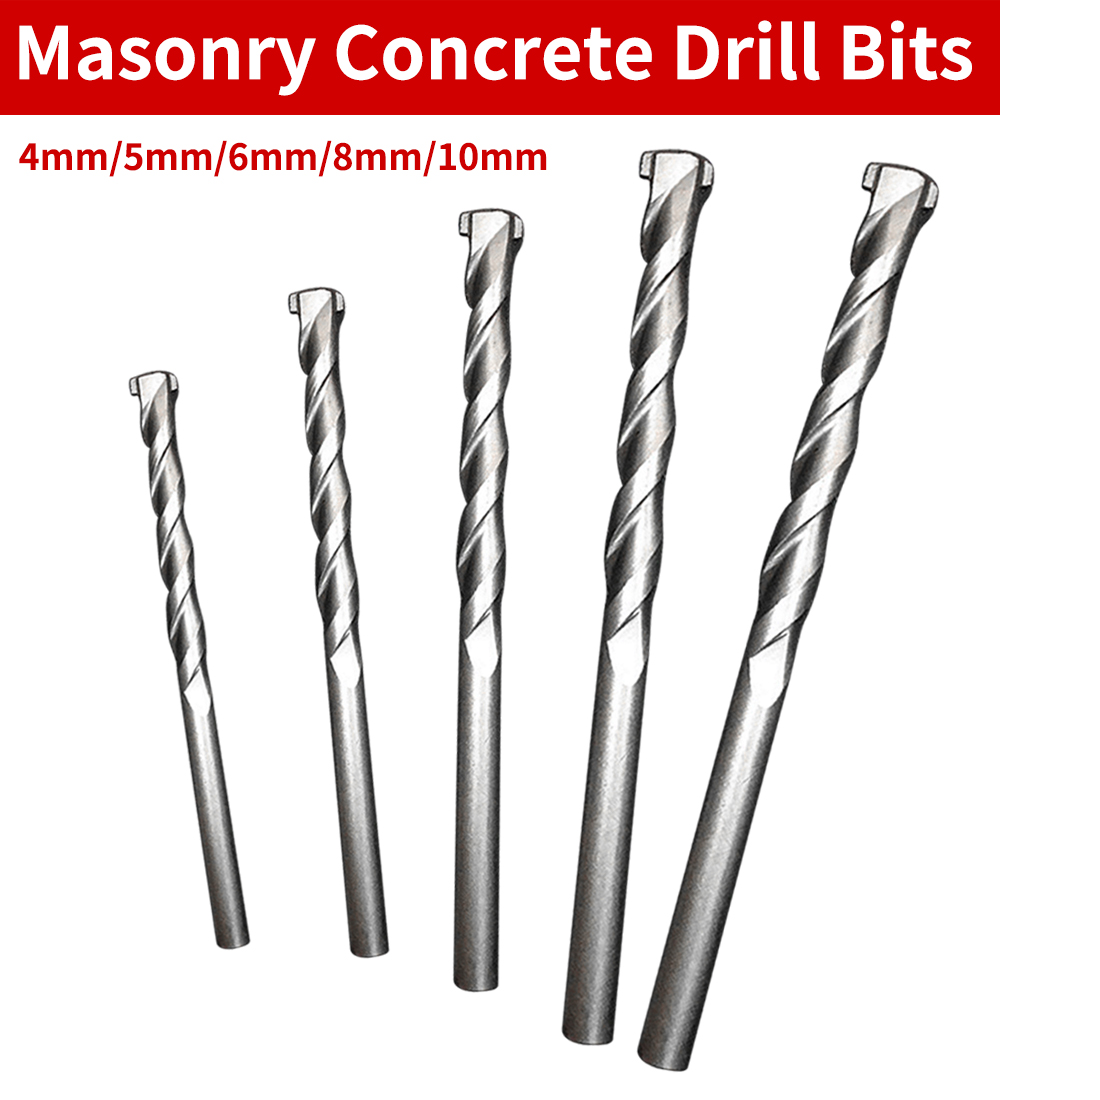 Masonry Drill Bit 4mm/5mm/6mm/8mm/10mm Rotary Tool Galvanized Drill Round Shank Spiral Flute For Drilling Concrete Brick Tile